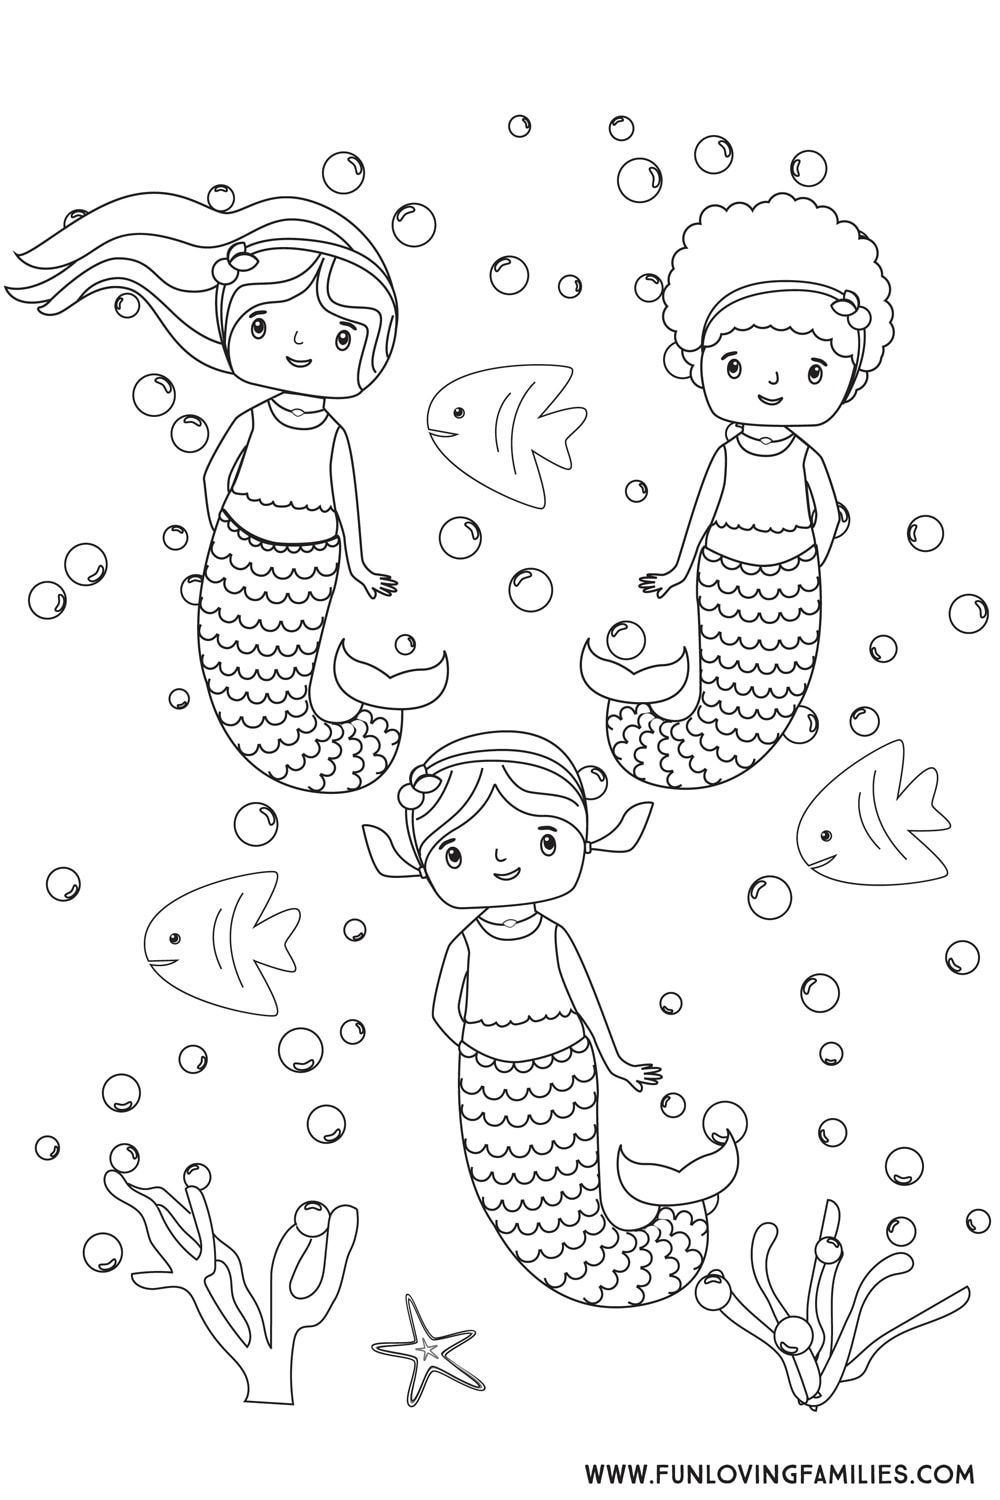 6 Cute Mermaid Coloring Pages For Kids Free Printables Mermaid Coloring Pages Mermaid Coloring Barbie Coloring Pages